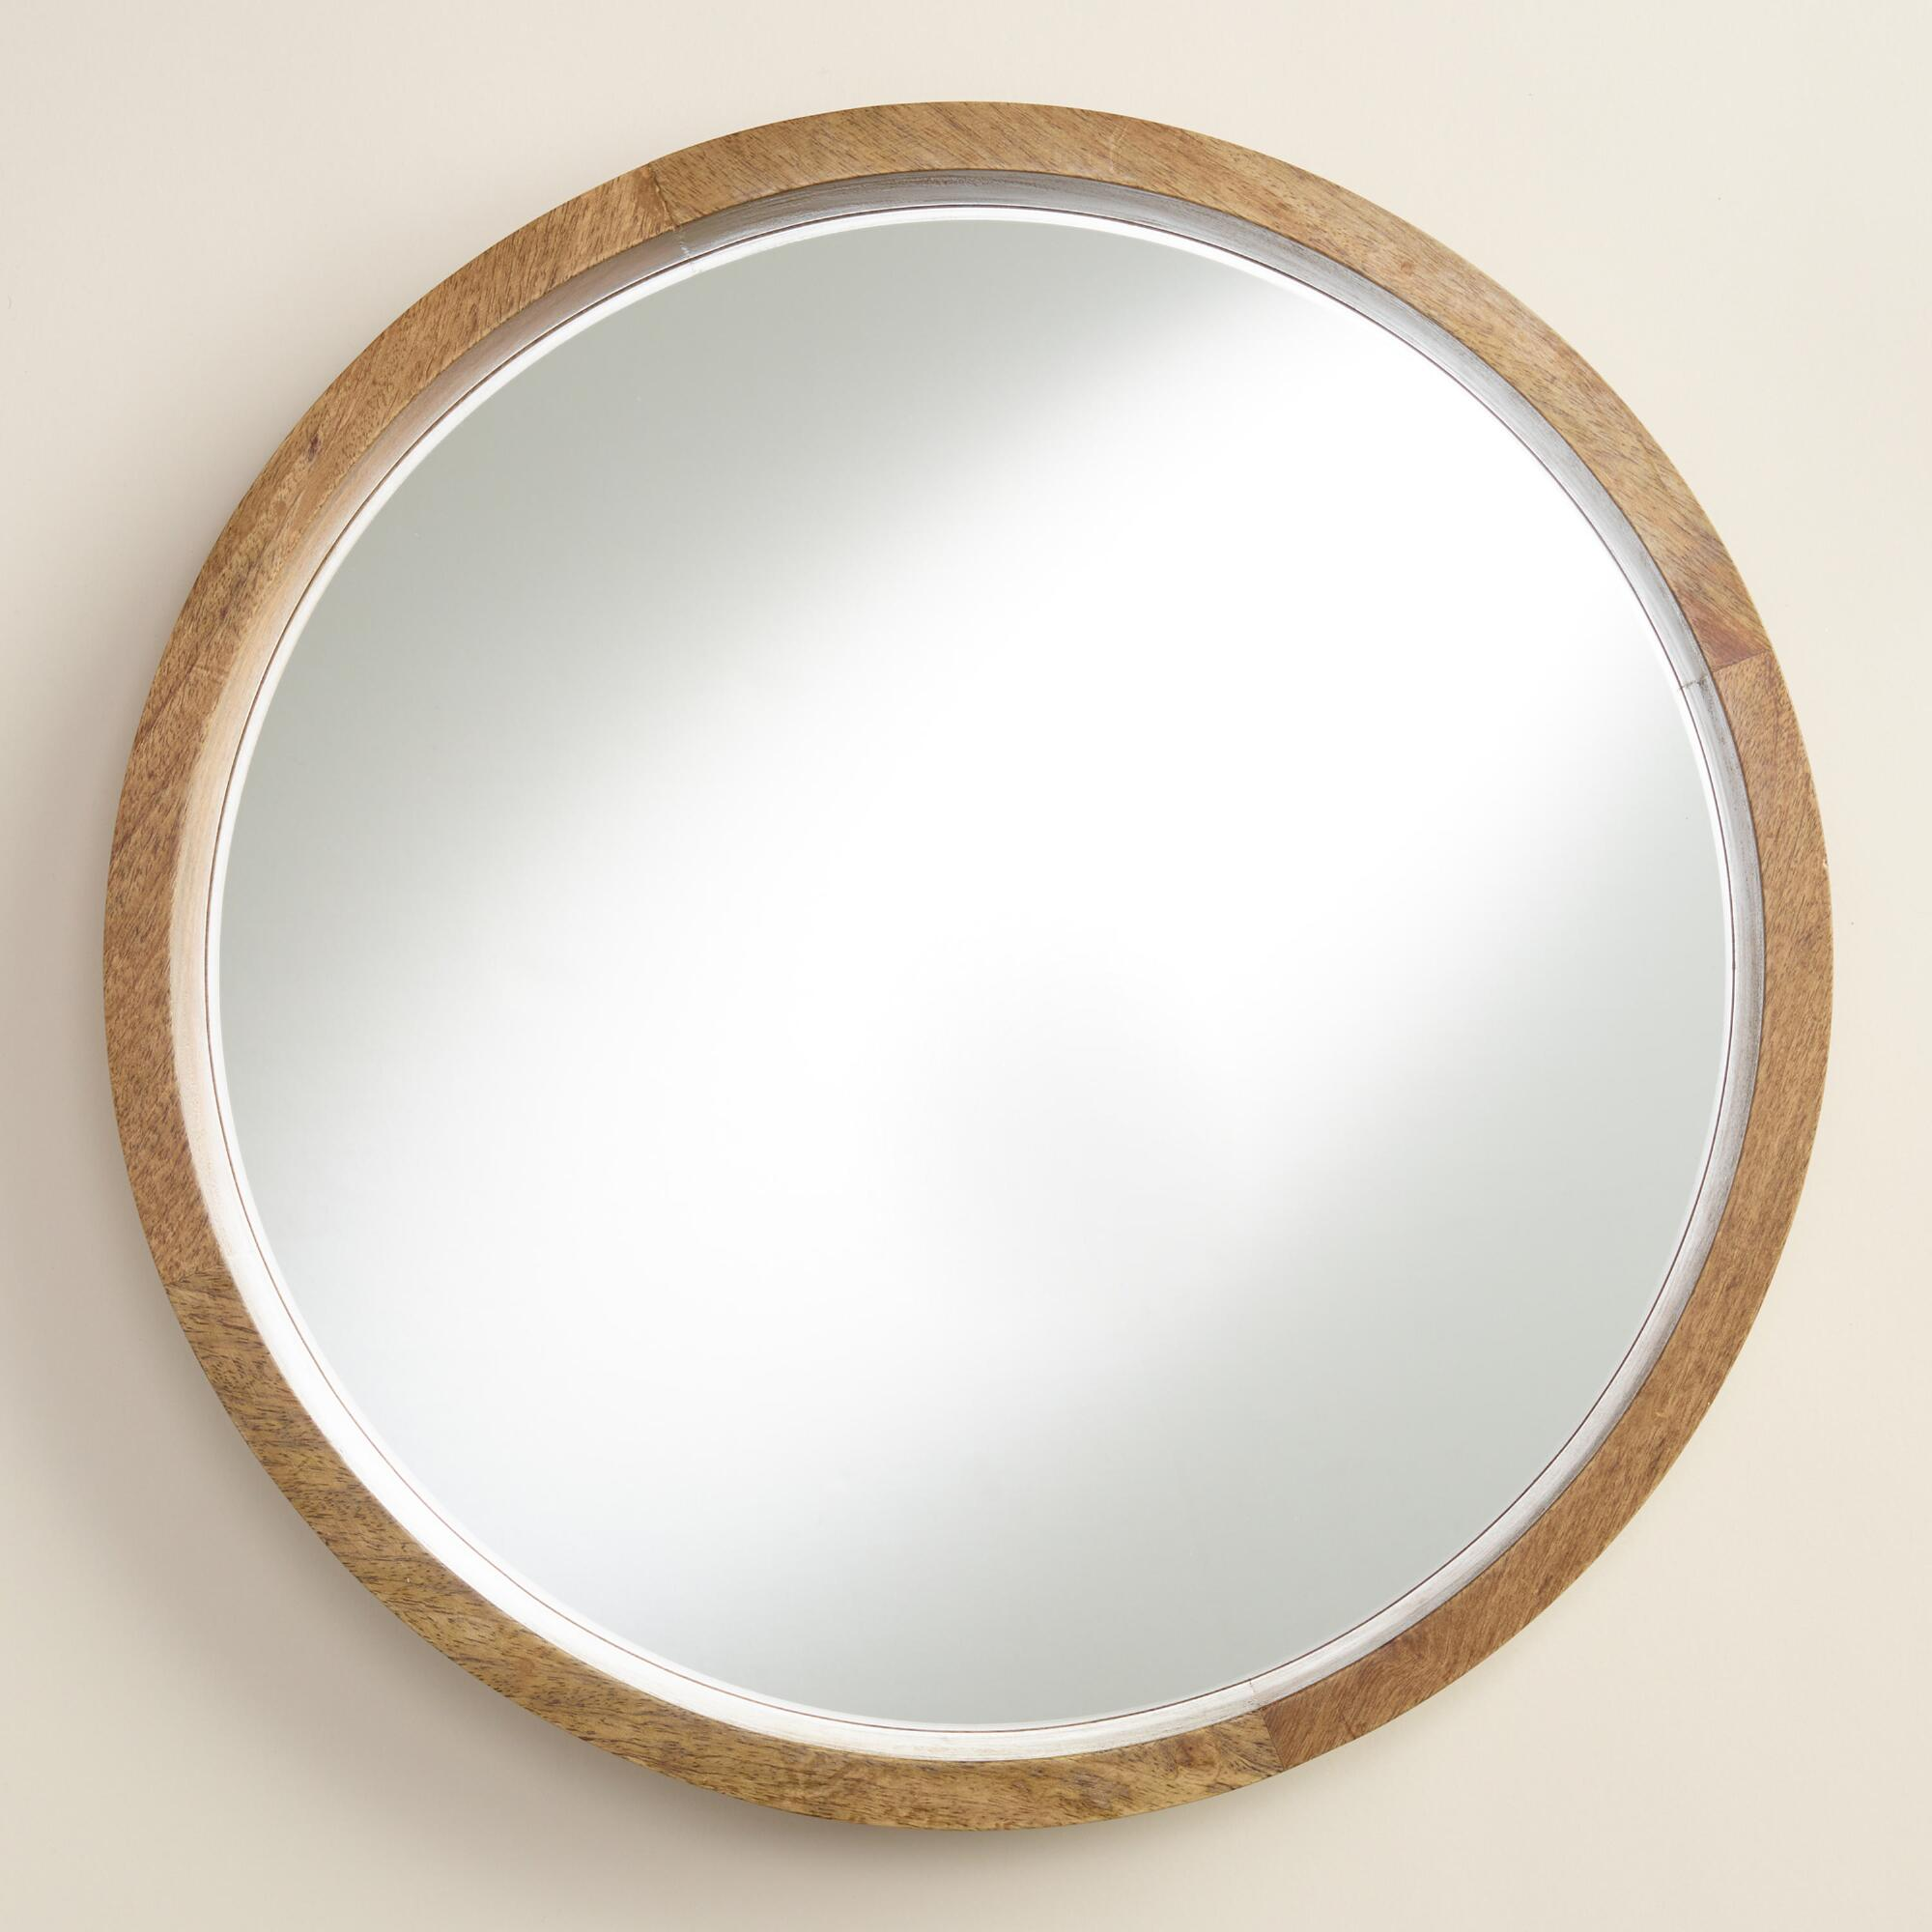 Natural wood round evan mirror world market for Round mirror